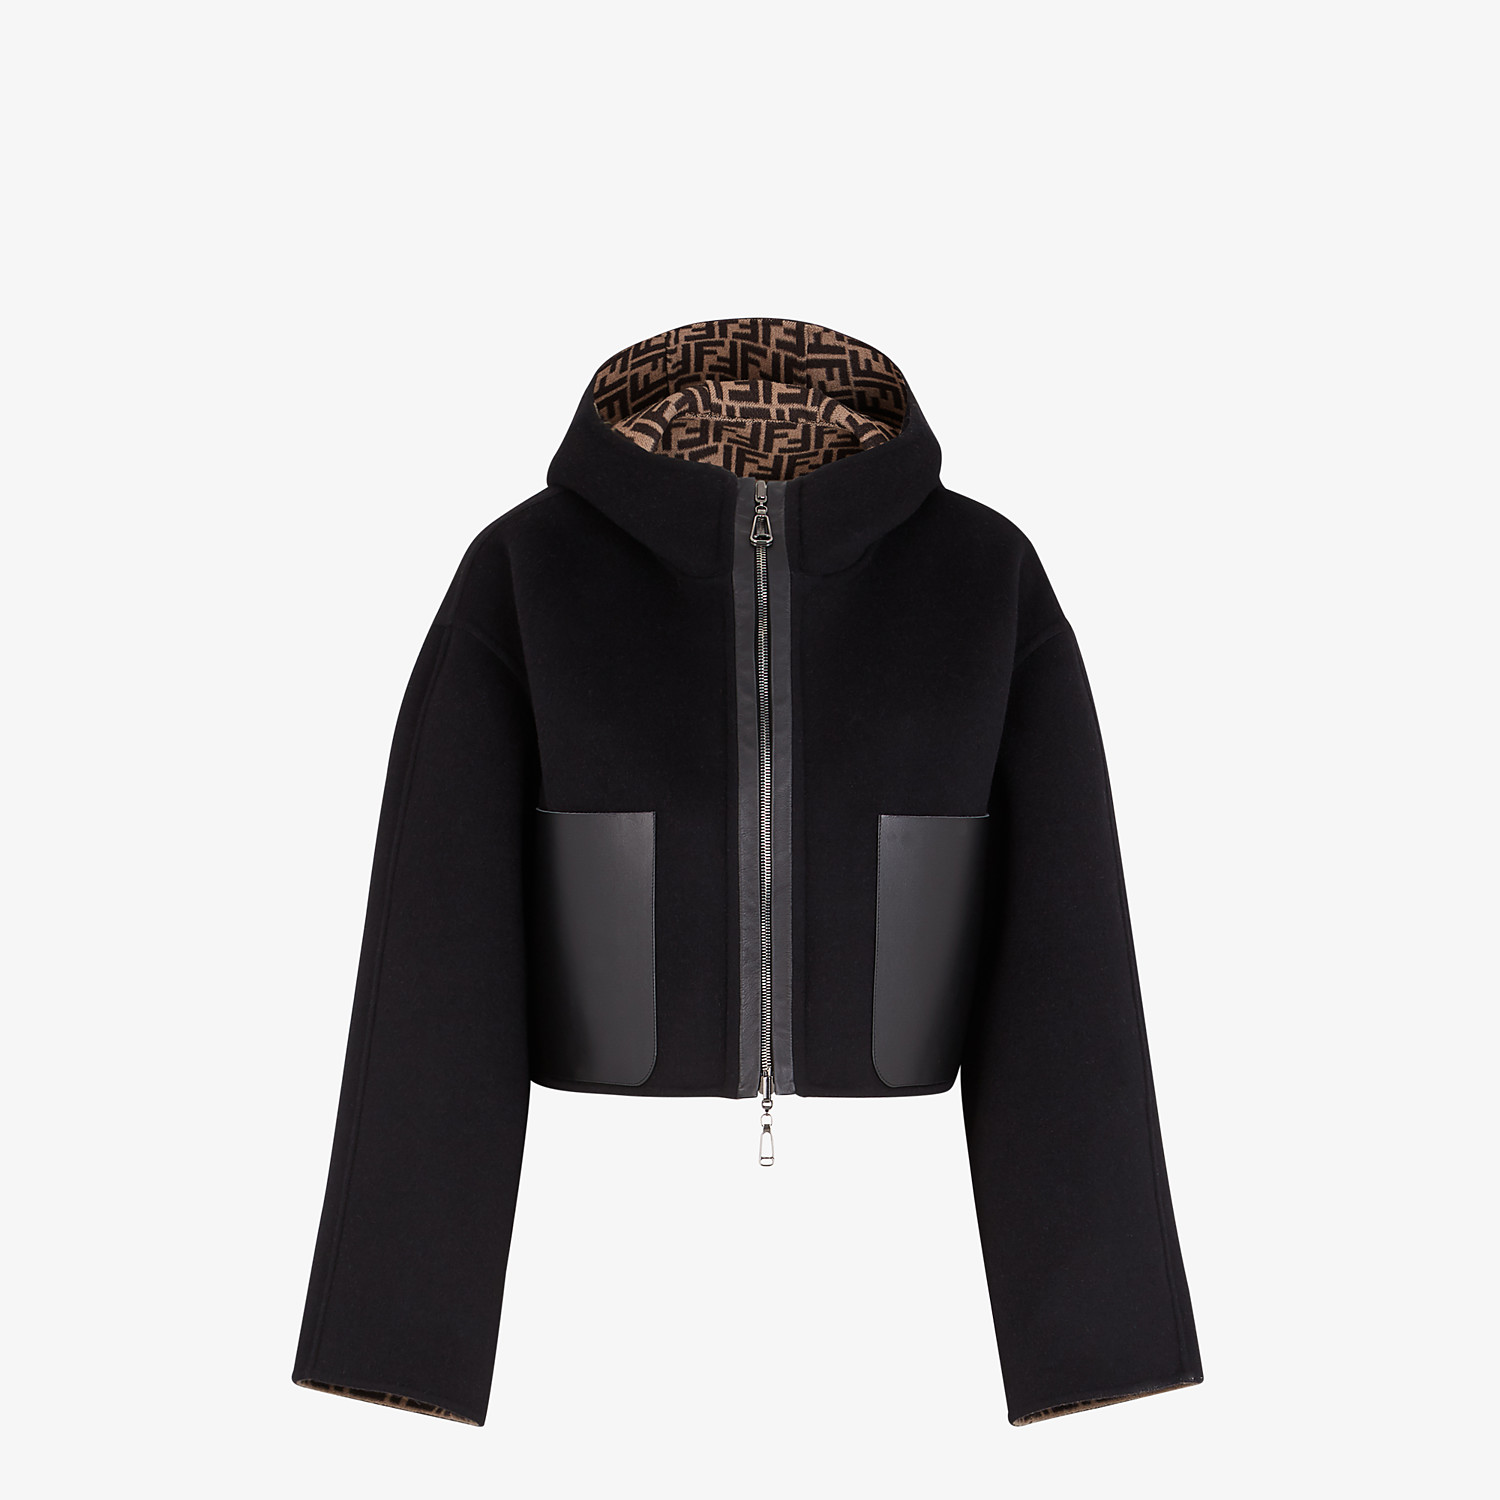 FENDI JACKET - Black wool jacket - view 1 detail